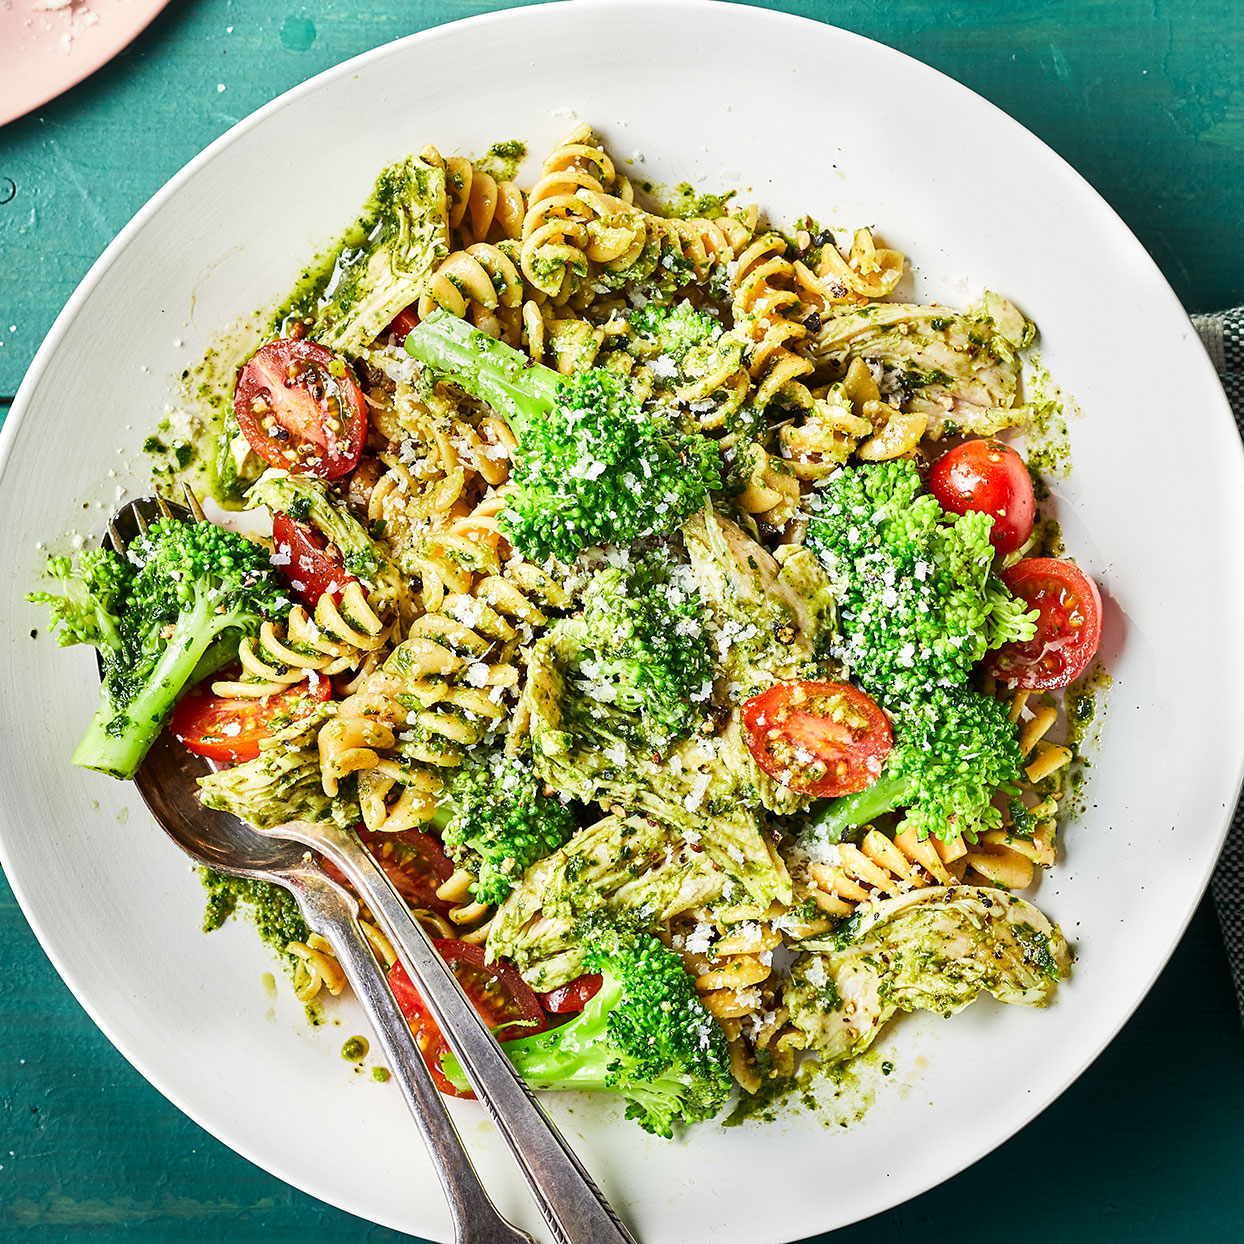 This easy pasta recipe is a weeknight dinner lifesaver. While shelf-stable pesto will work here, we prefer the fresh flavor and more vibrant color of refrigerated pesto. Look for it in the refrigerated section of your supermarket, near the fresh pasta and marinara sauce.